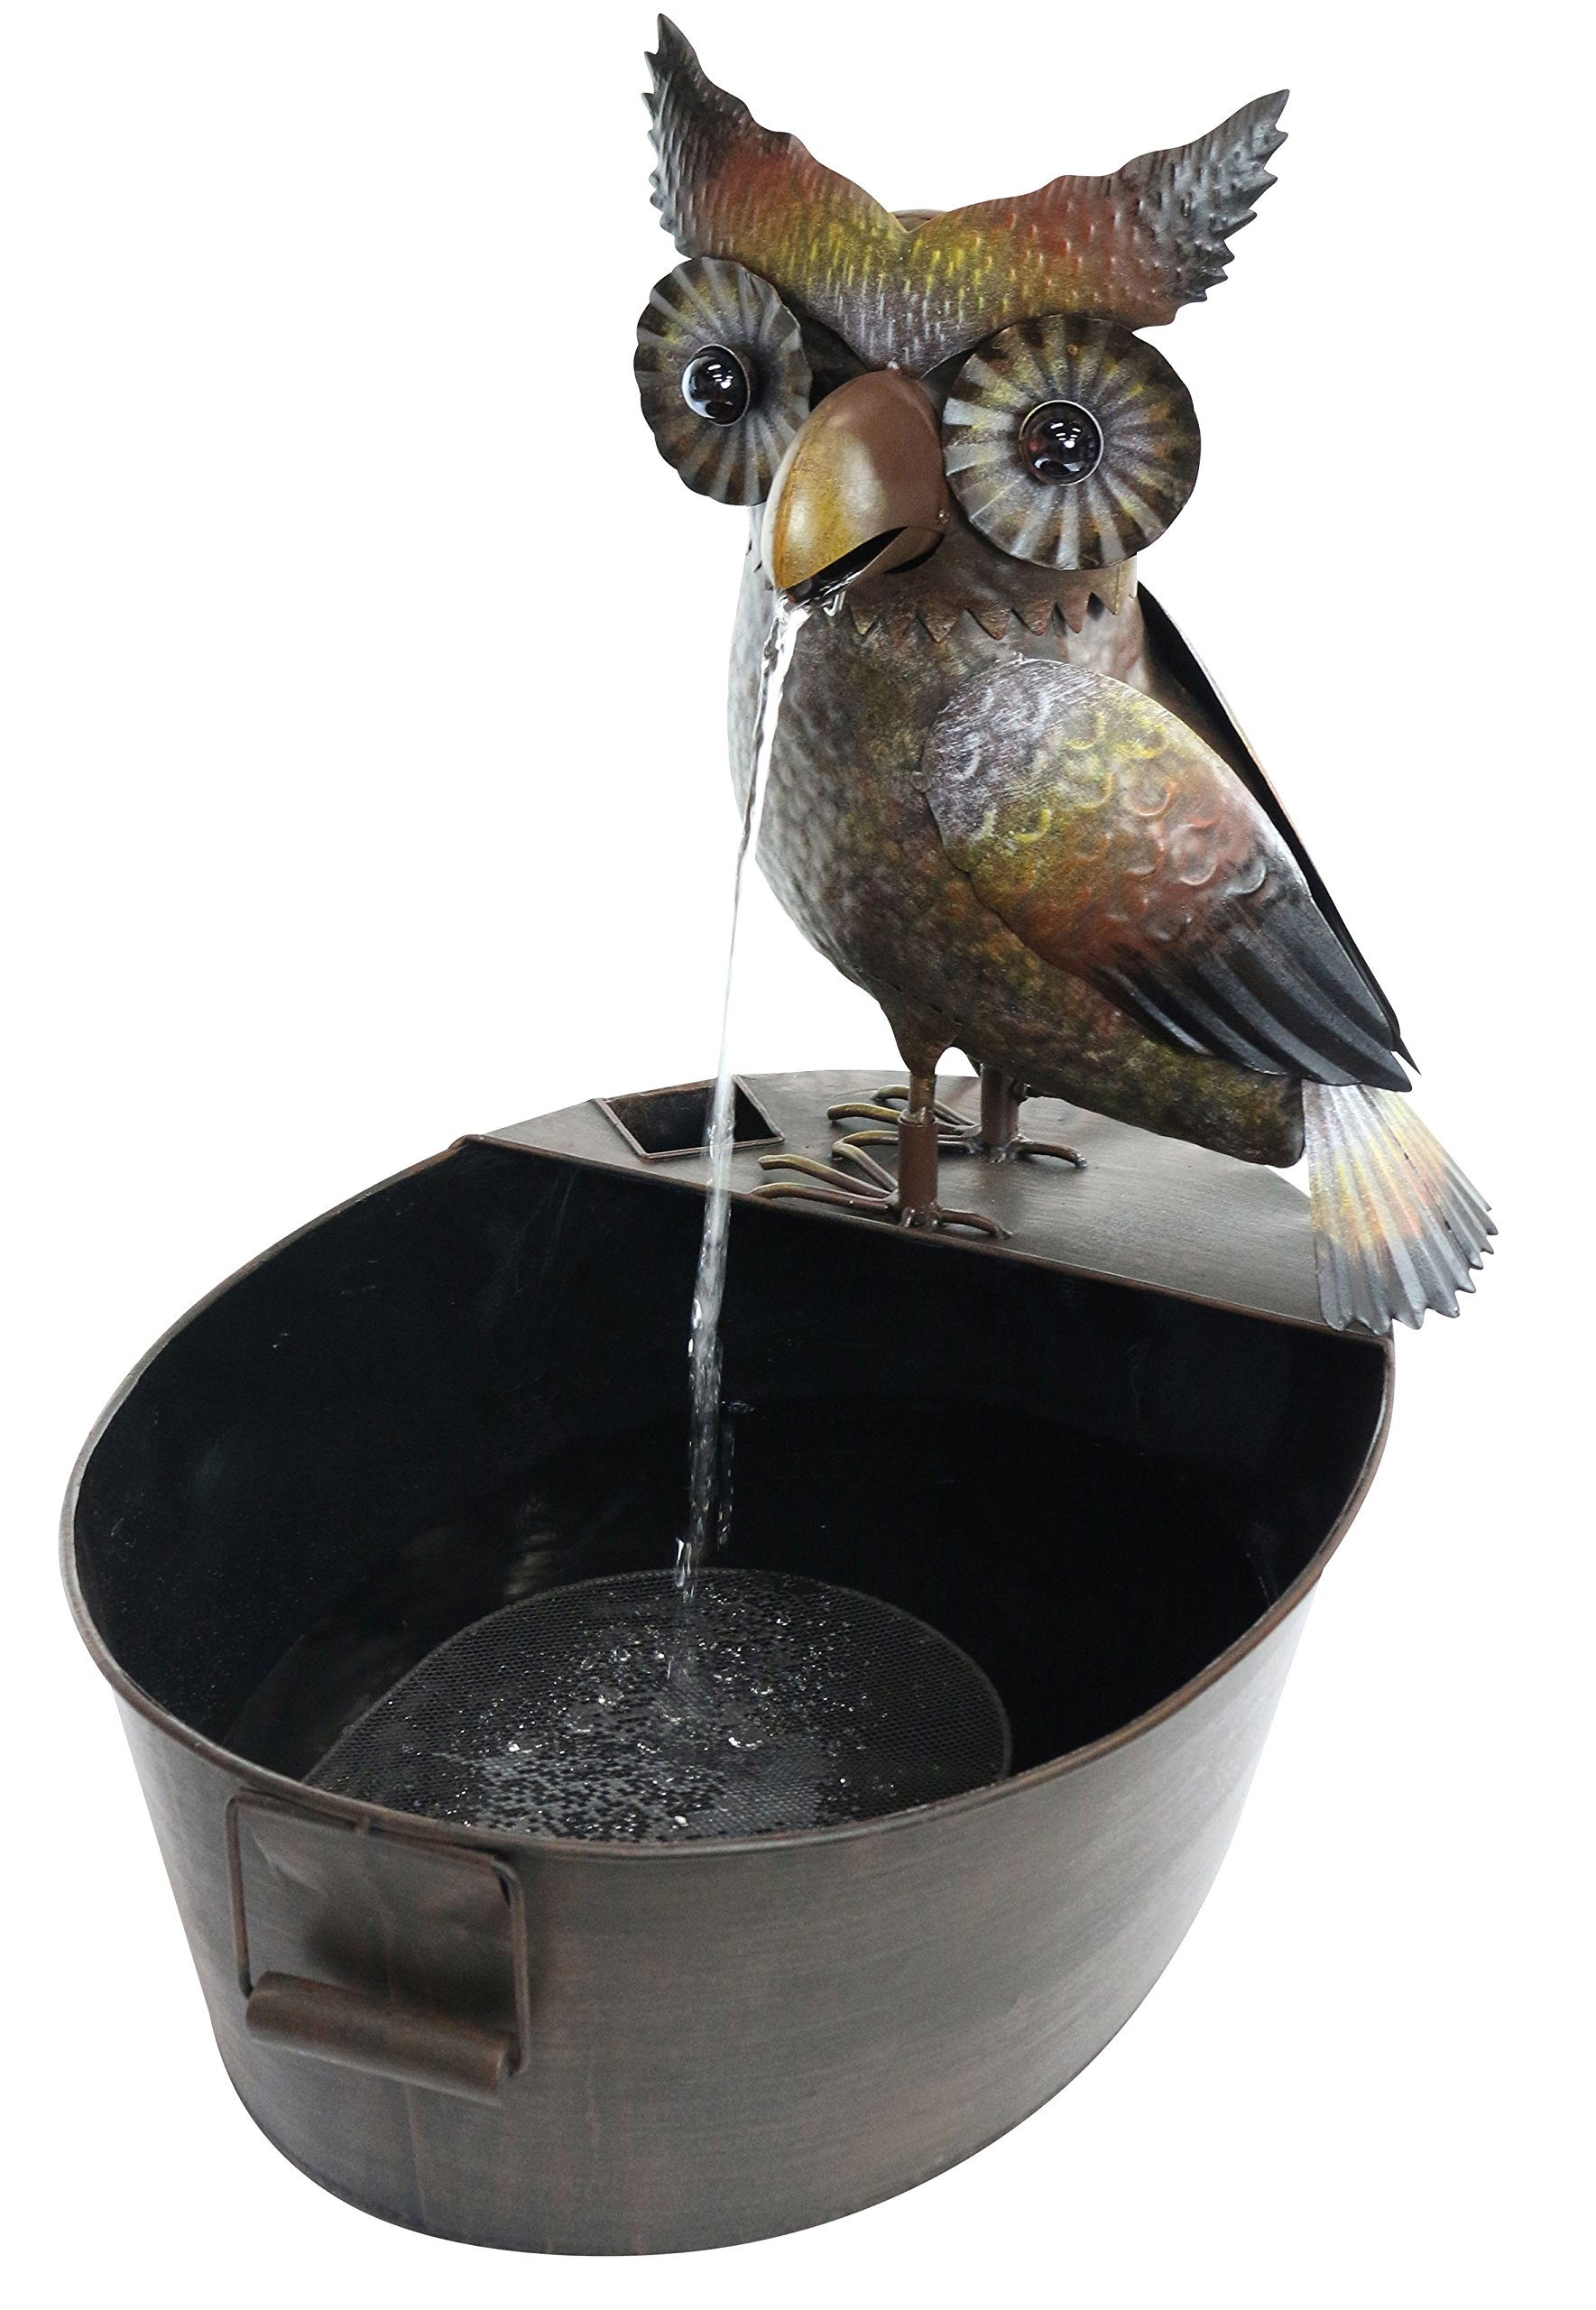 "Alpine Metal Owl on a Tin Fountain, 23 Inch Tall - 20""L x 15""W x 23""H, made of metal with a 250 L/H flow rate and a 5L water capacity Playful, whimsical owl on a tin fountain with a single stream that adds a rustic charm to your décor Made of durable materials that will perfect your home, yard, and garden décor - patio, outdoor-decor, fountains - 81jtndcNKLL -"